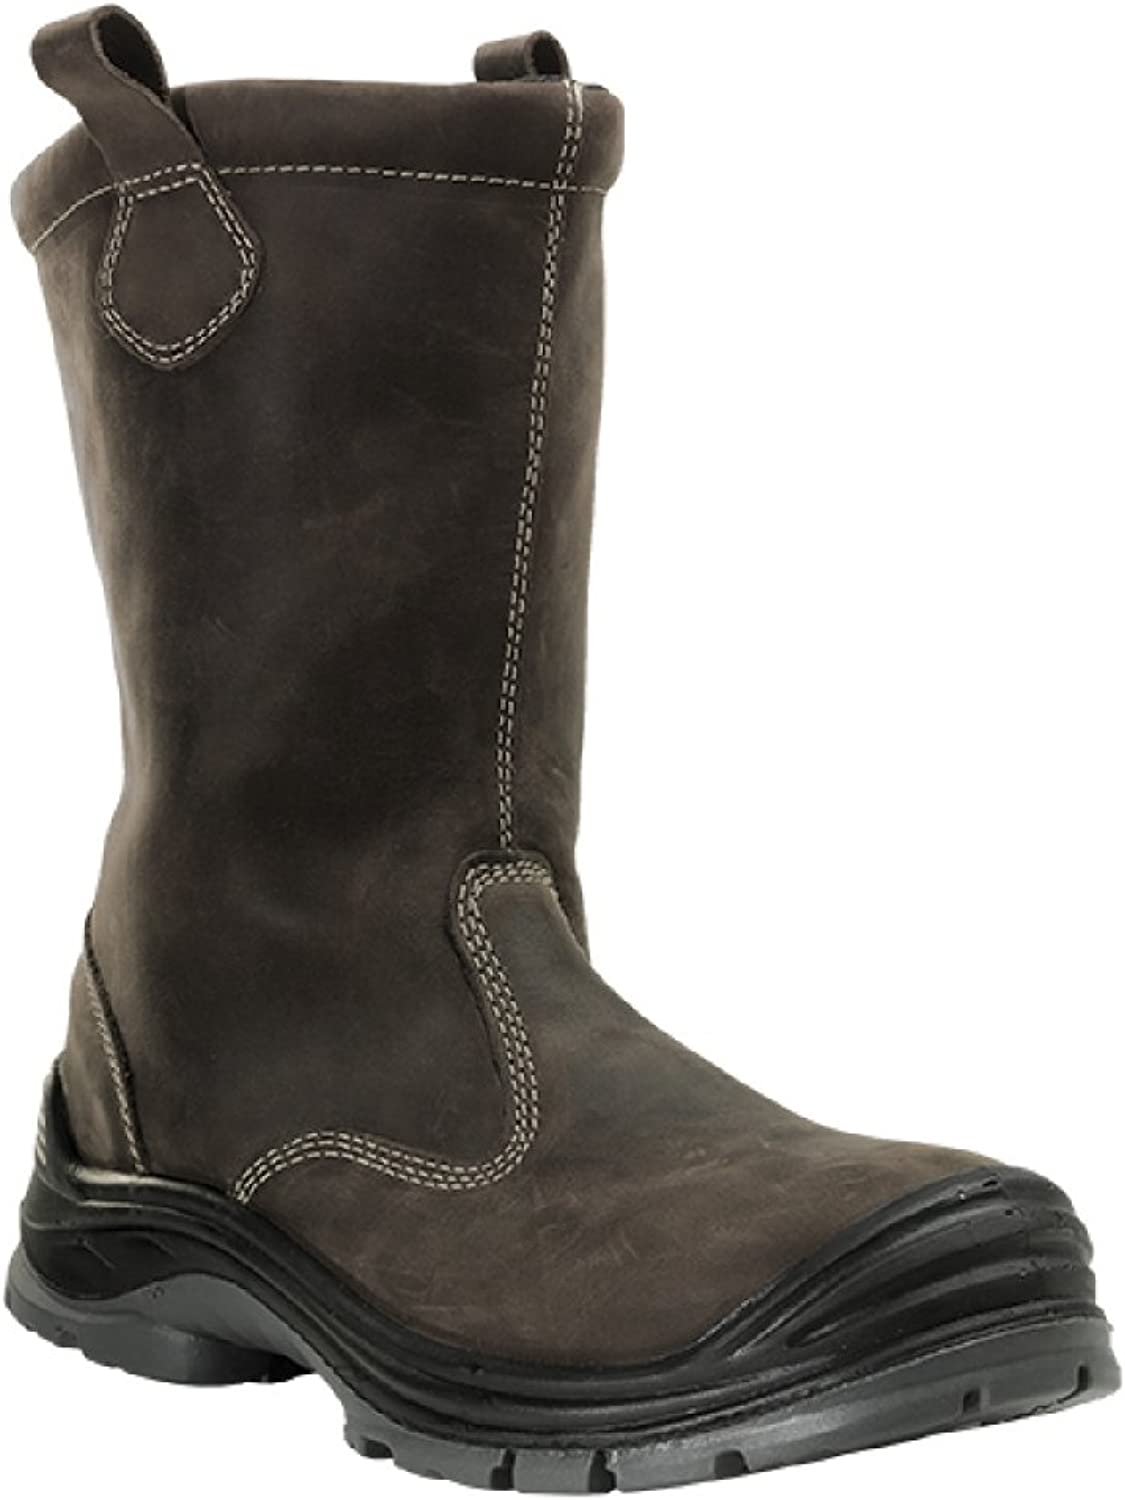 Crixus High Compo S3 Boot - Safety Boots Boots Soul Rebel